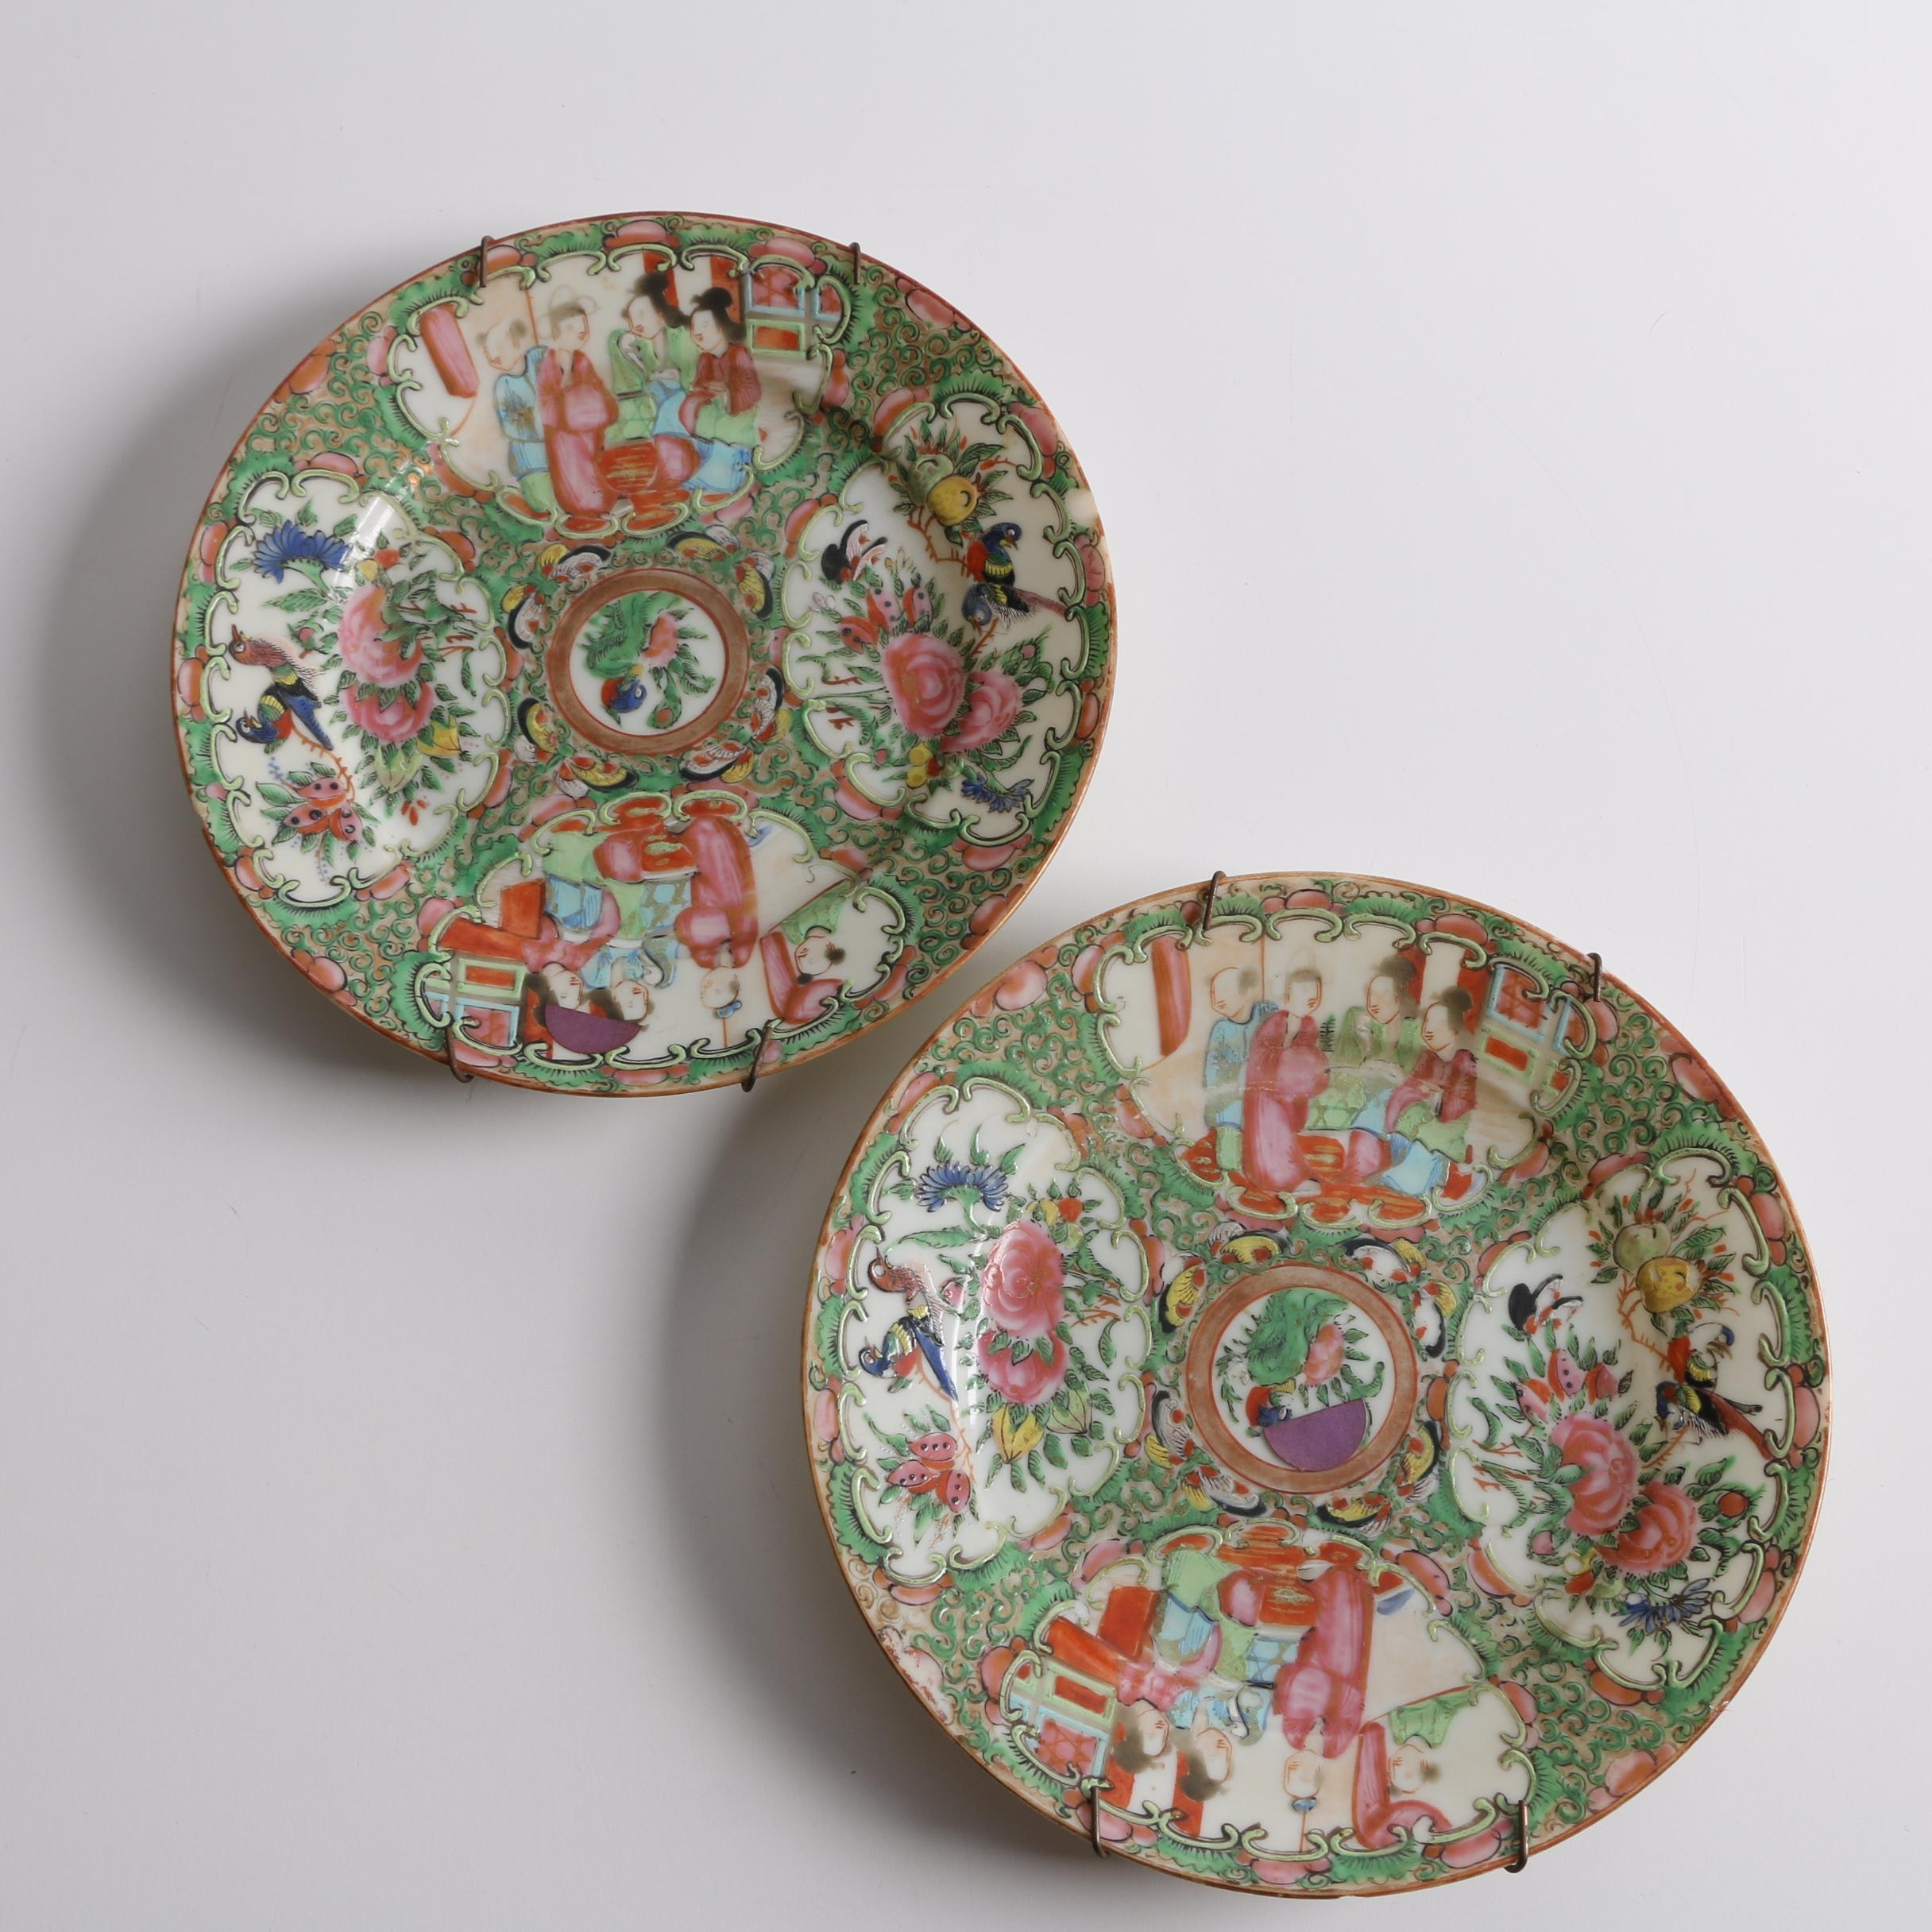 Antique Chinese Rose Medallion Porcelain Plates